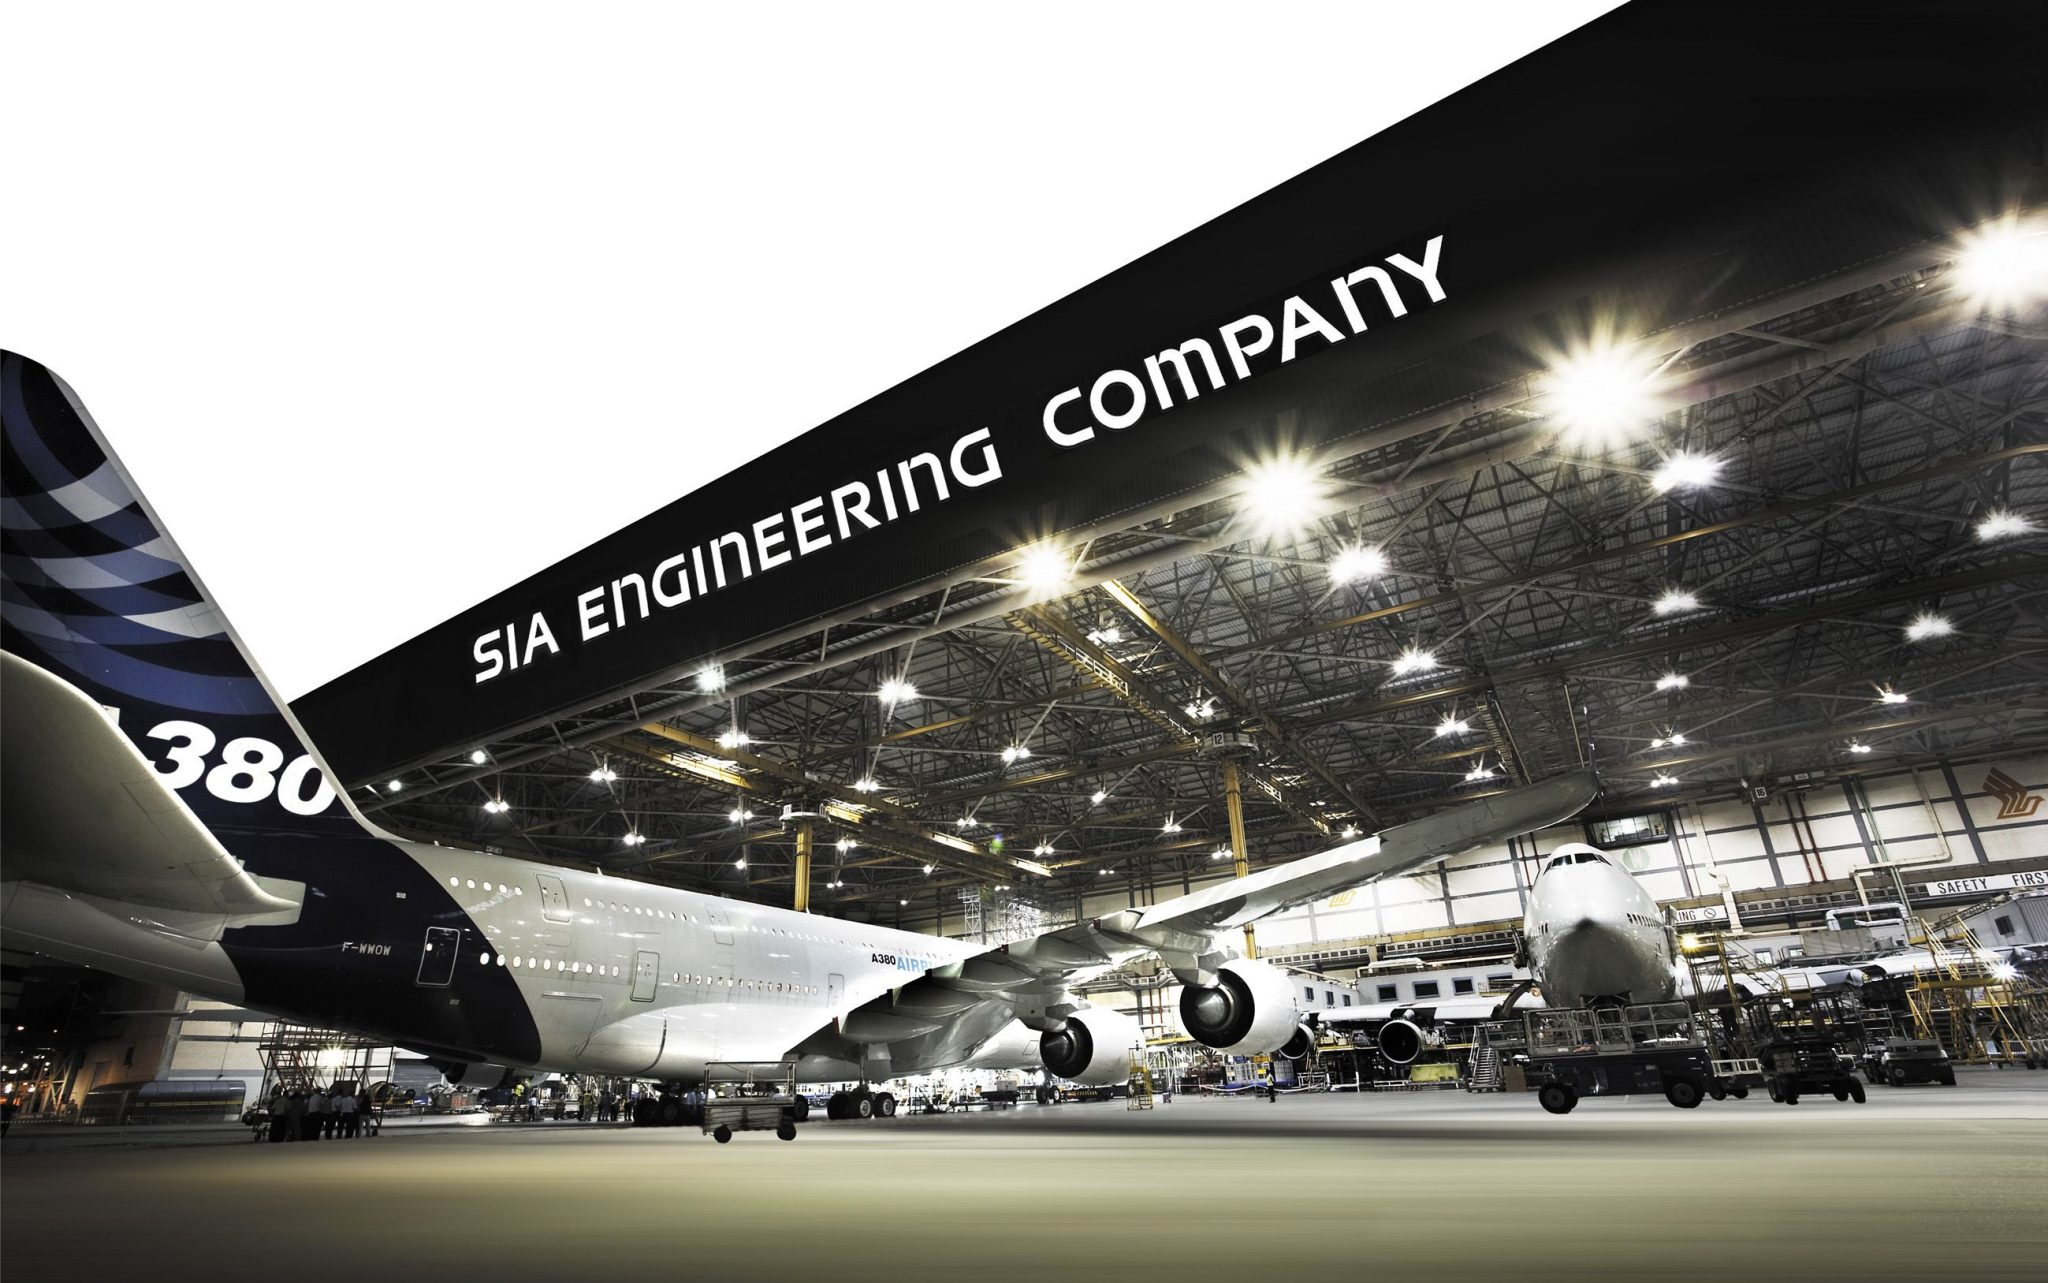 sia corporation essay Below is an essay on sia corporation from anti essays, your source for research papers, essays, and term paper examples 24 march 2011 to: name of the company.